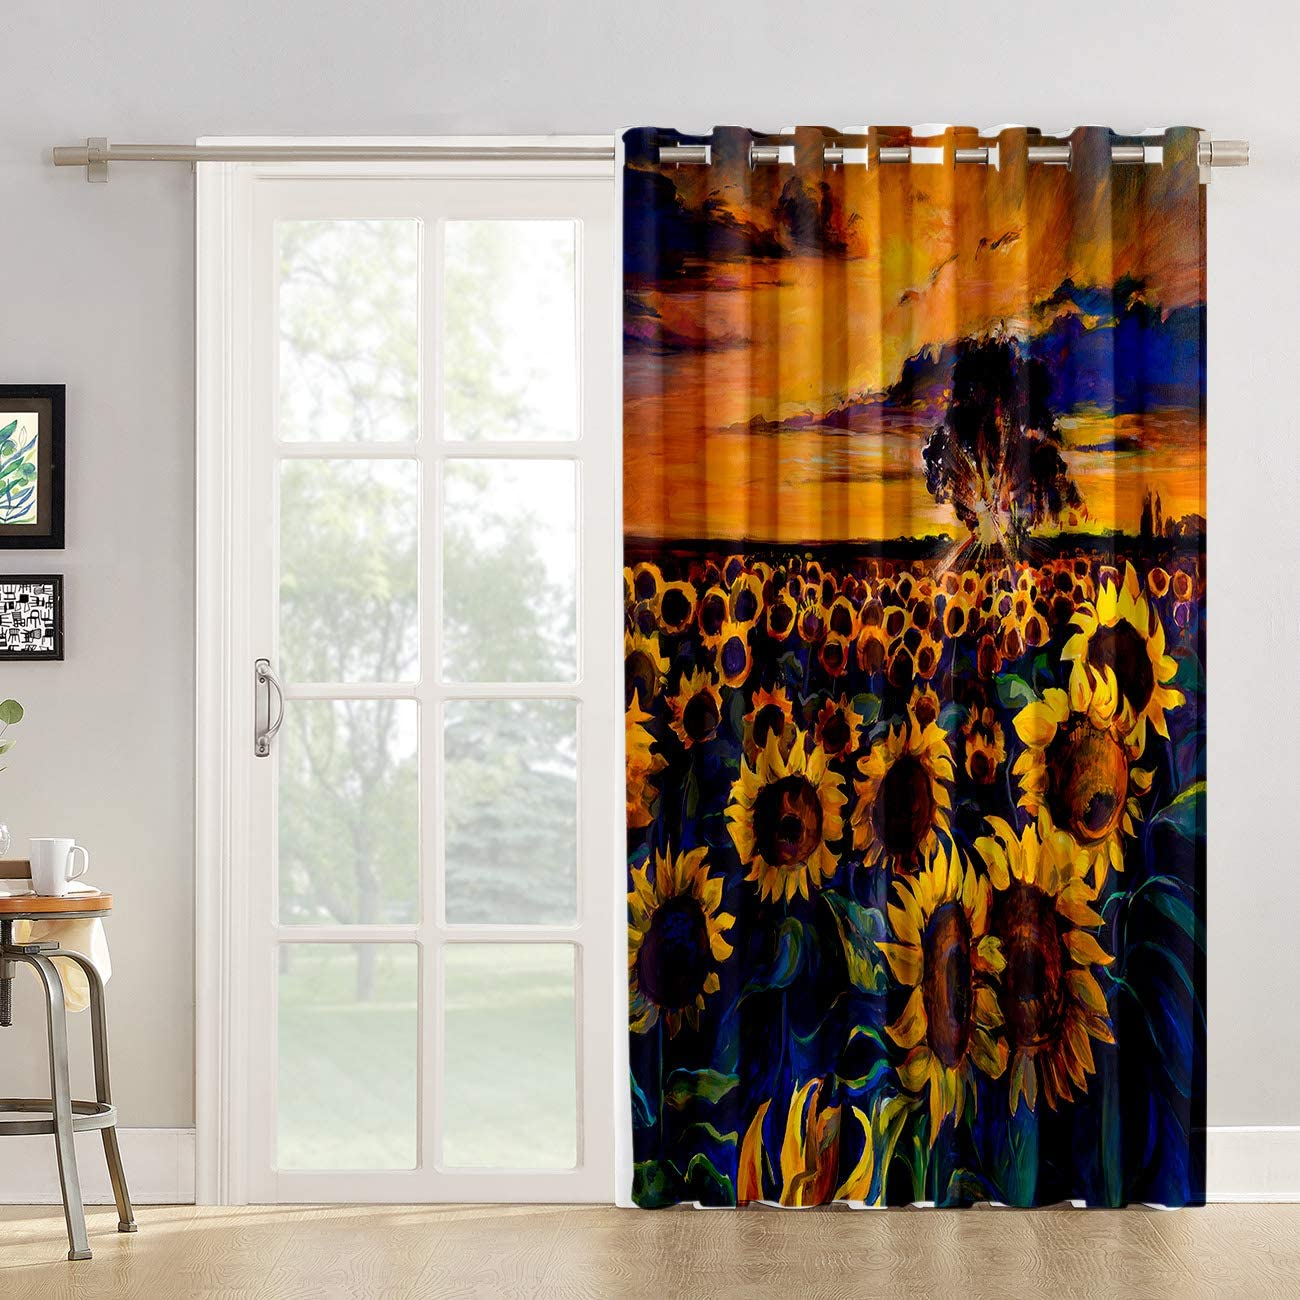 Amazon Com Kitchen Tier Curtains 63 Inch Length Chic Window Drapes Panel For Living Room Bedroom Sunflower Draperies Painting Style Park Patterned Fabric Curtain Sliding Glass Door Patio Home